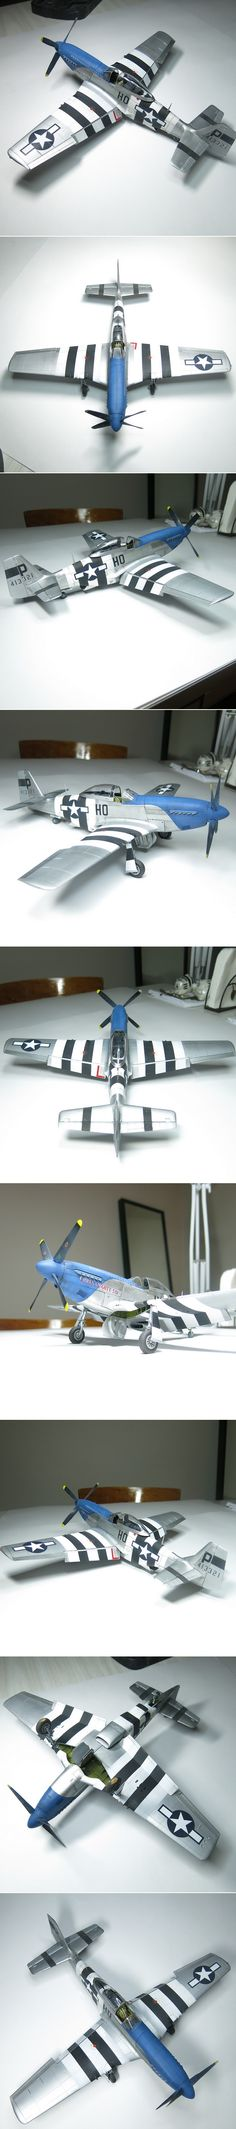 D-Day George Preddy Cripes A' Mighty 3rd 1/32 Tamiya P-51D  http://www.network54.com/Forum/47751/message/1402161396/D-Day+George+Preddy+Cripes+A%27+Mighty+3rd